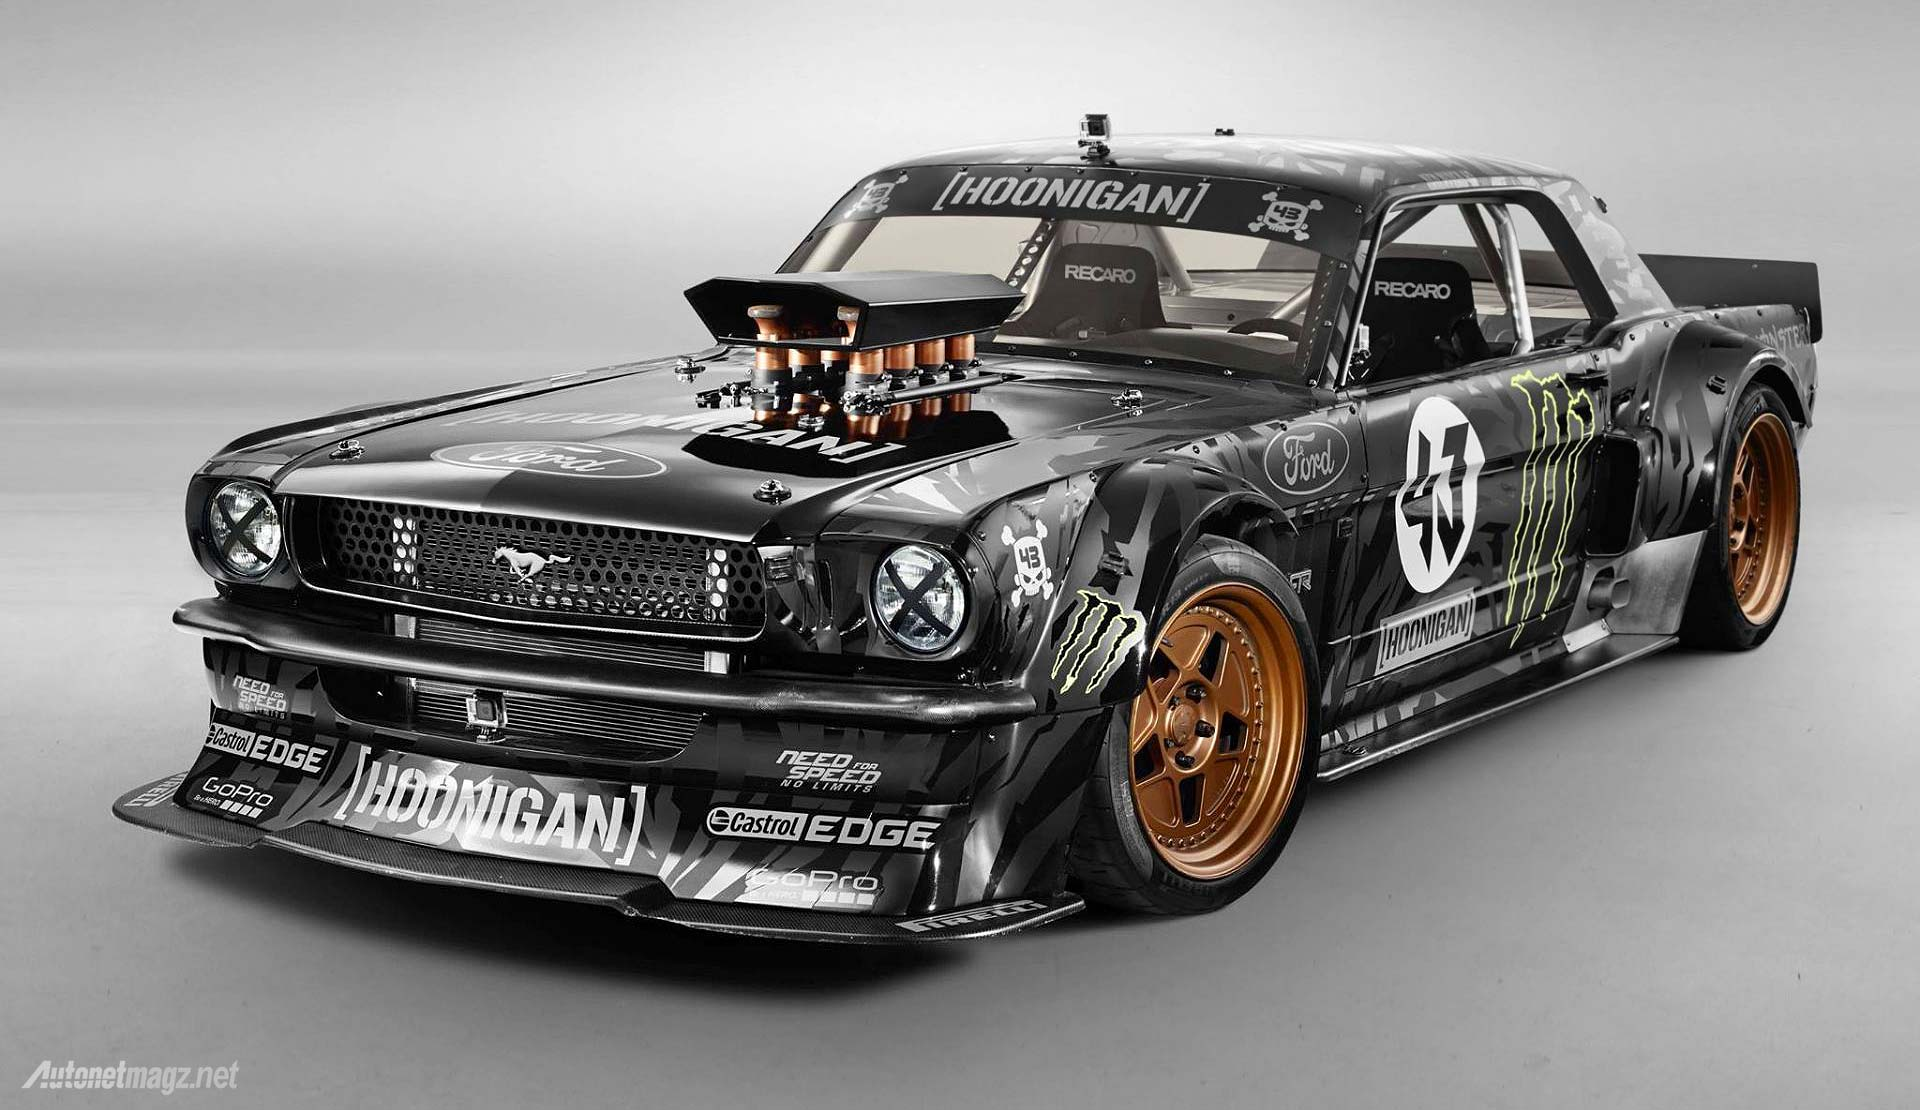 Ken Block Gymkhana new car Ford Mustang wallpaper